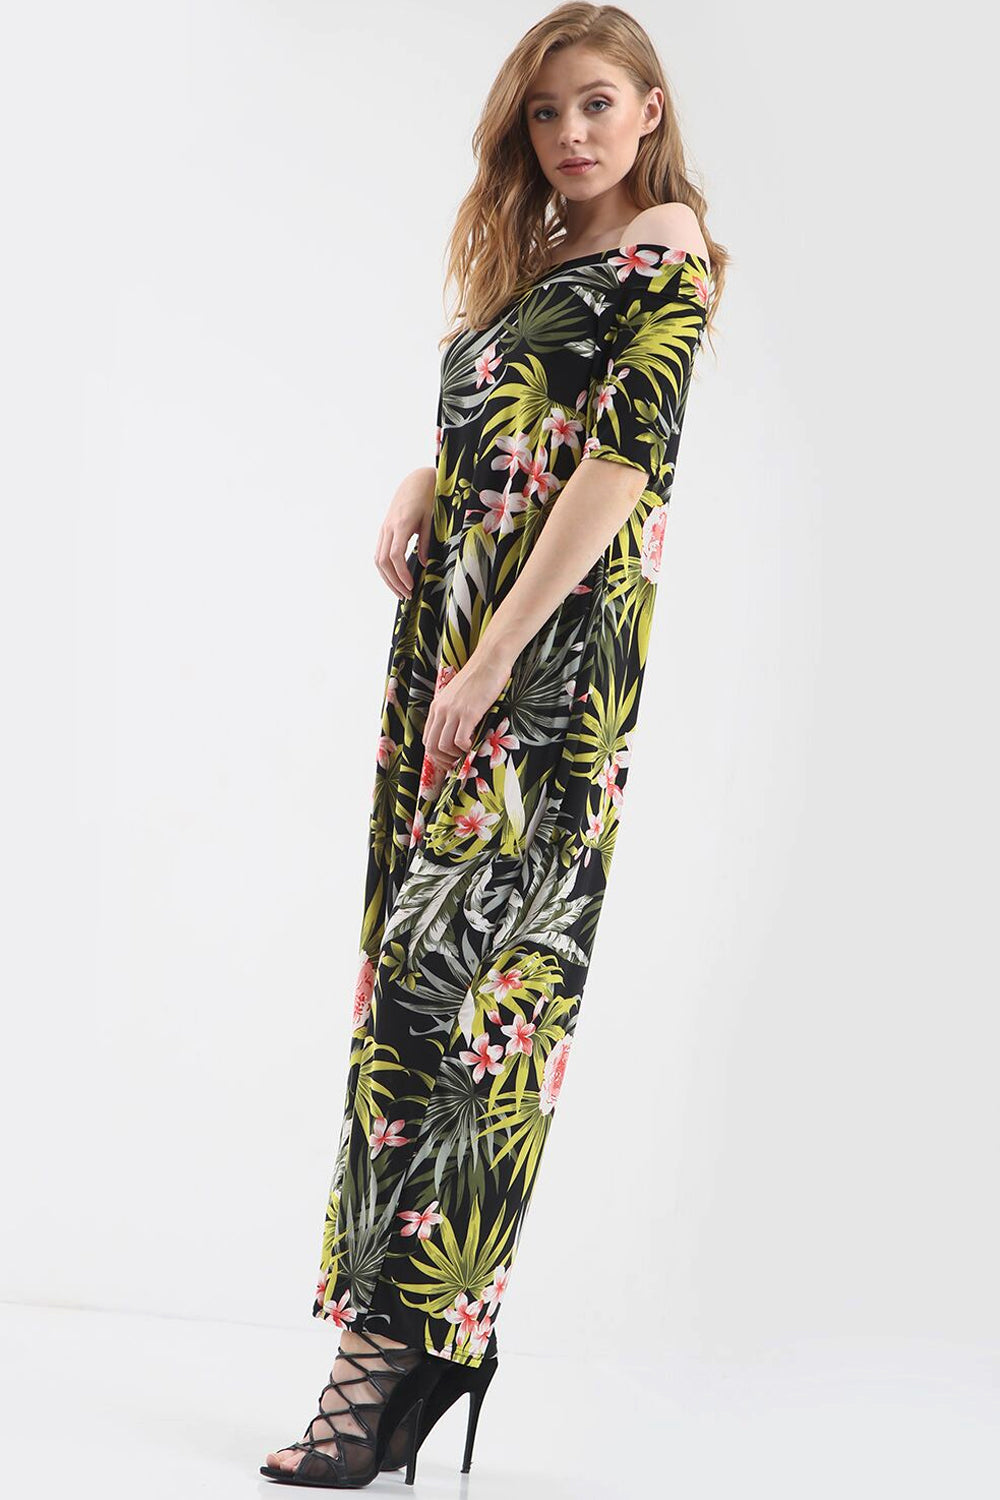 Off Shoulder Green Tropical Print Maxi Dress - bejealous-com